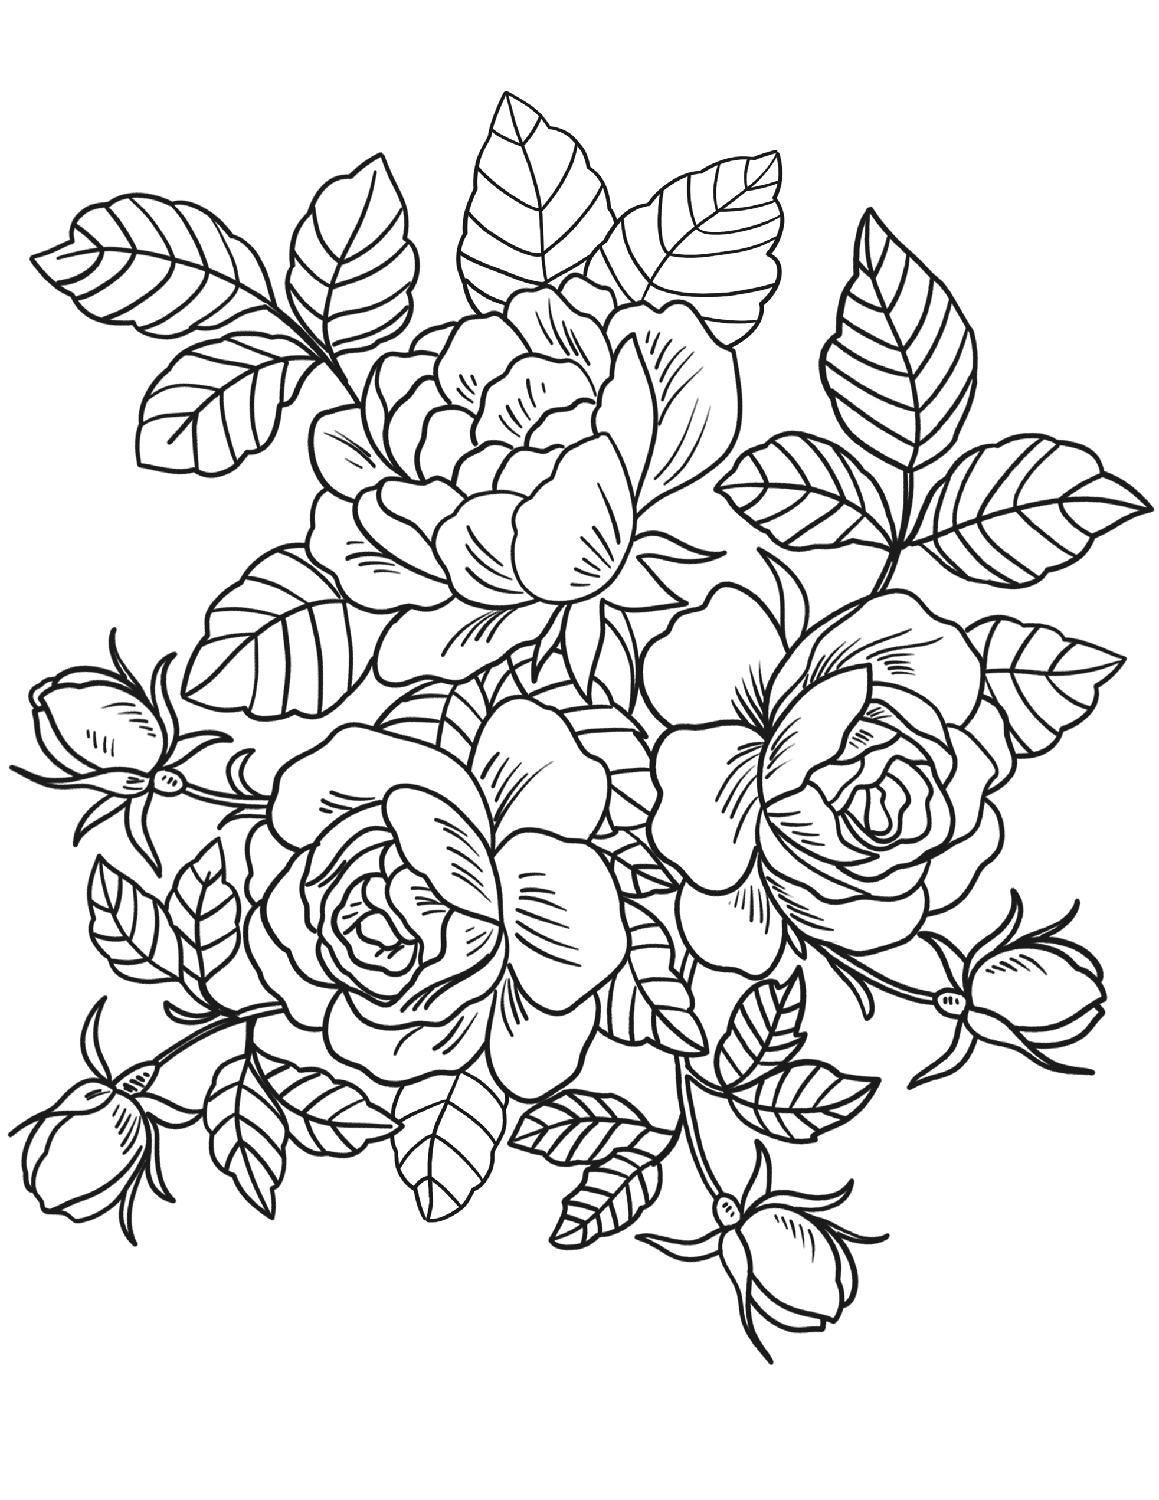 free flower coloring pages for adults flower coloring pages for adults best coloring pages for pages flower free for coloring adults